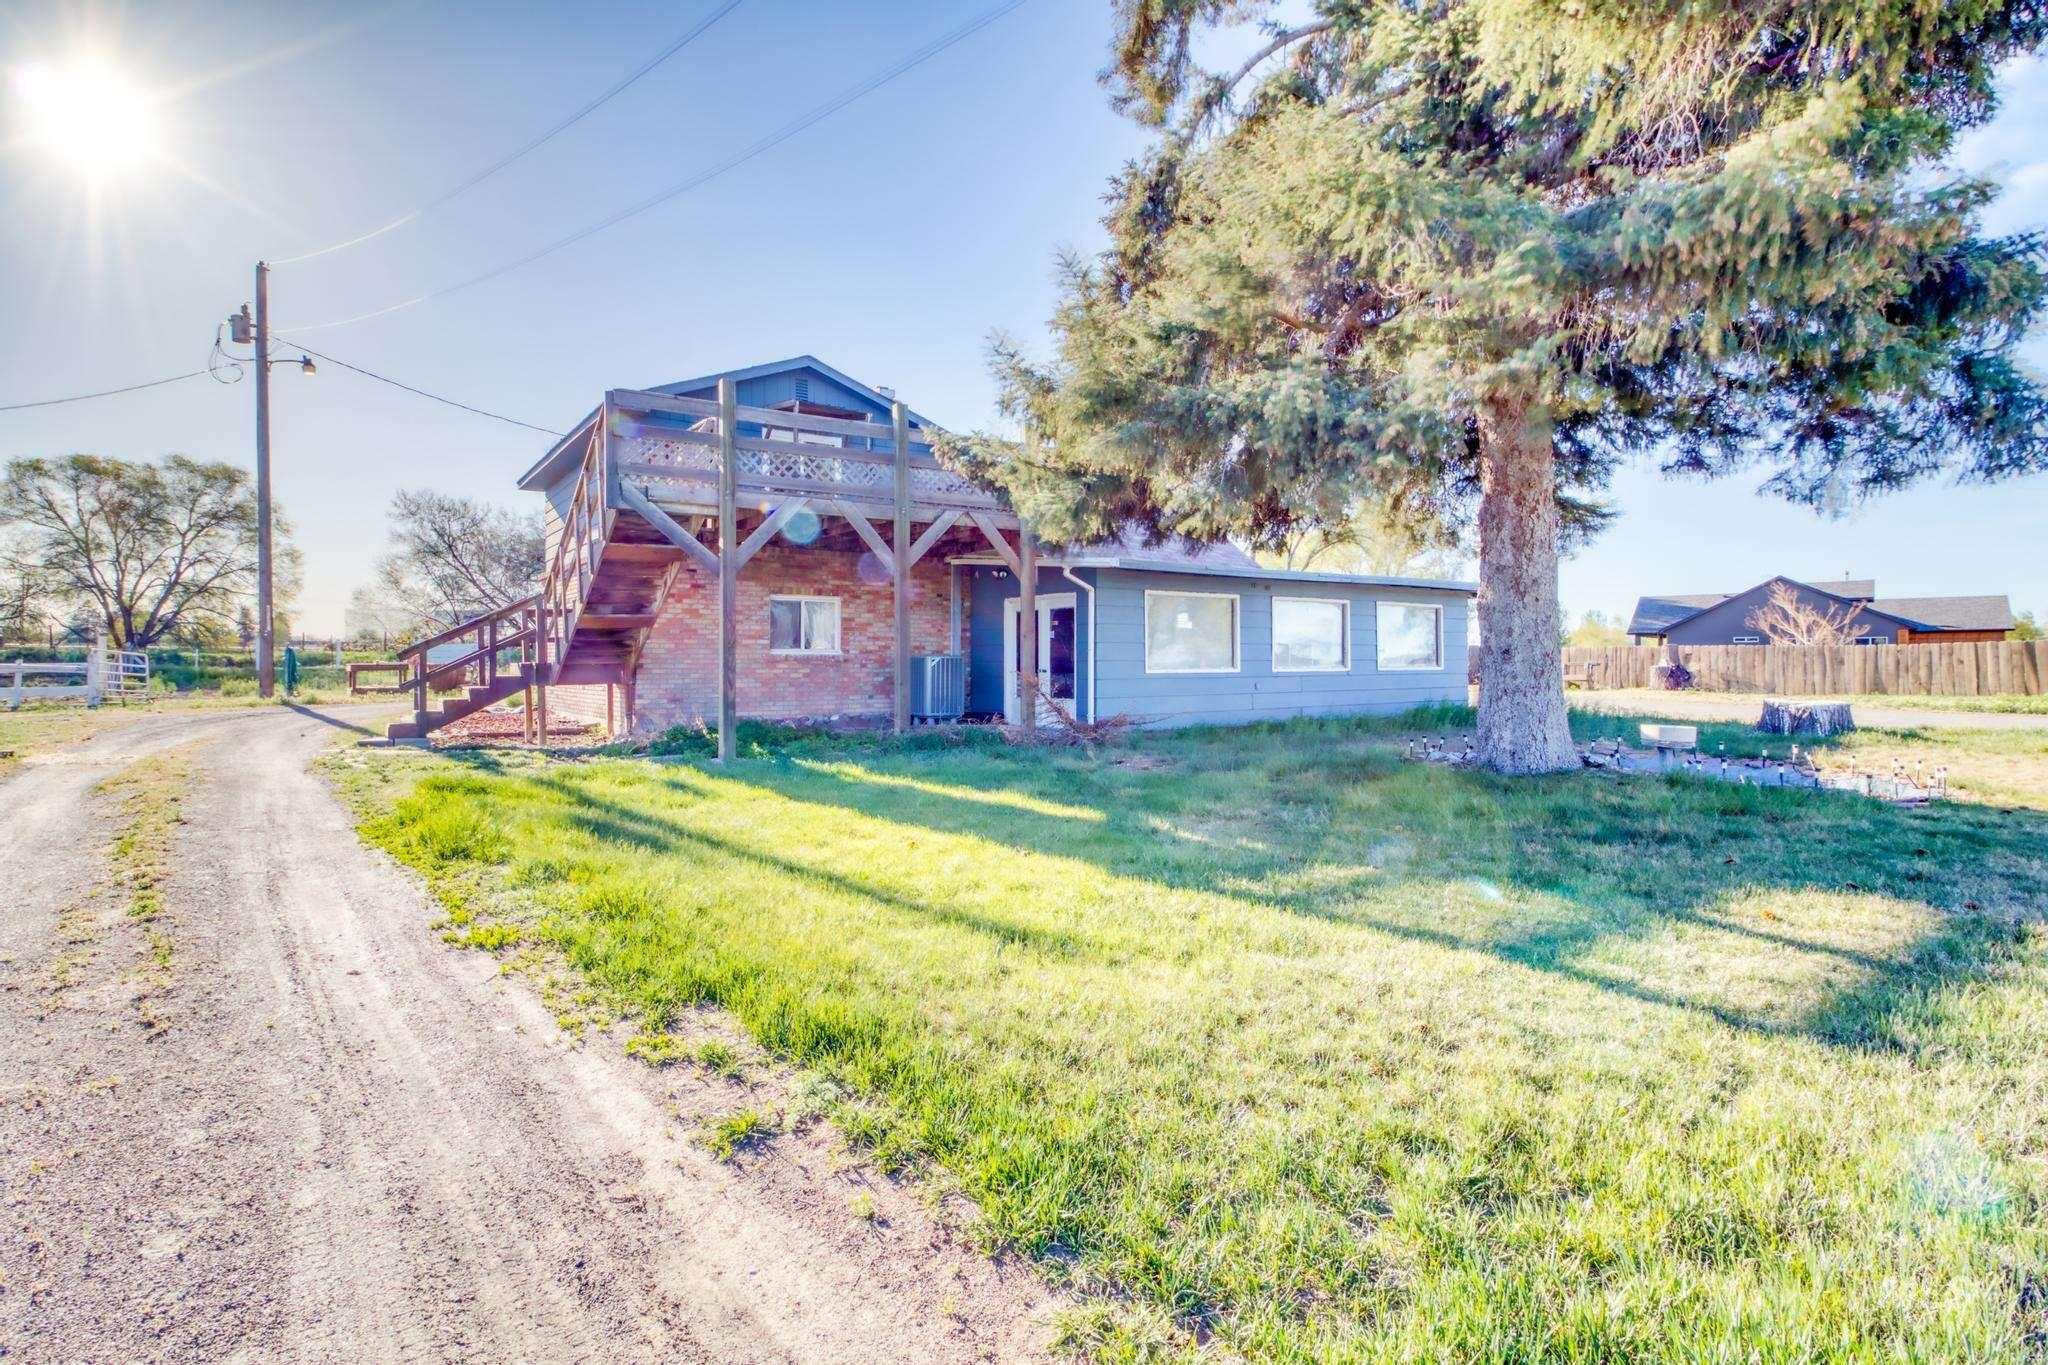 74 S 100 W Property Photo - Jerome, ID real estate listing